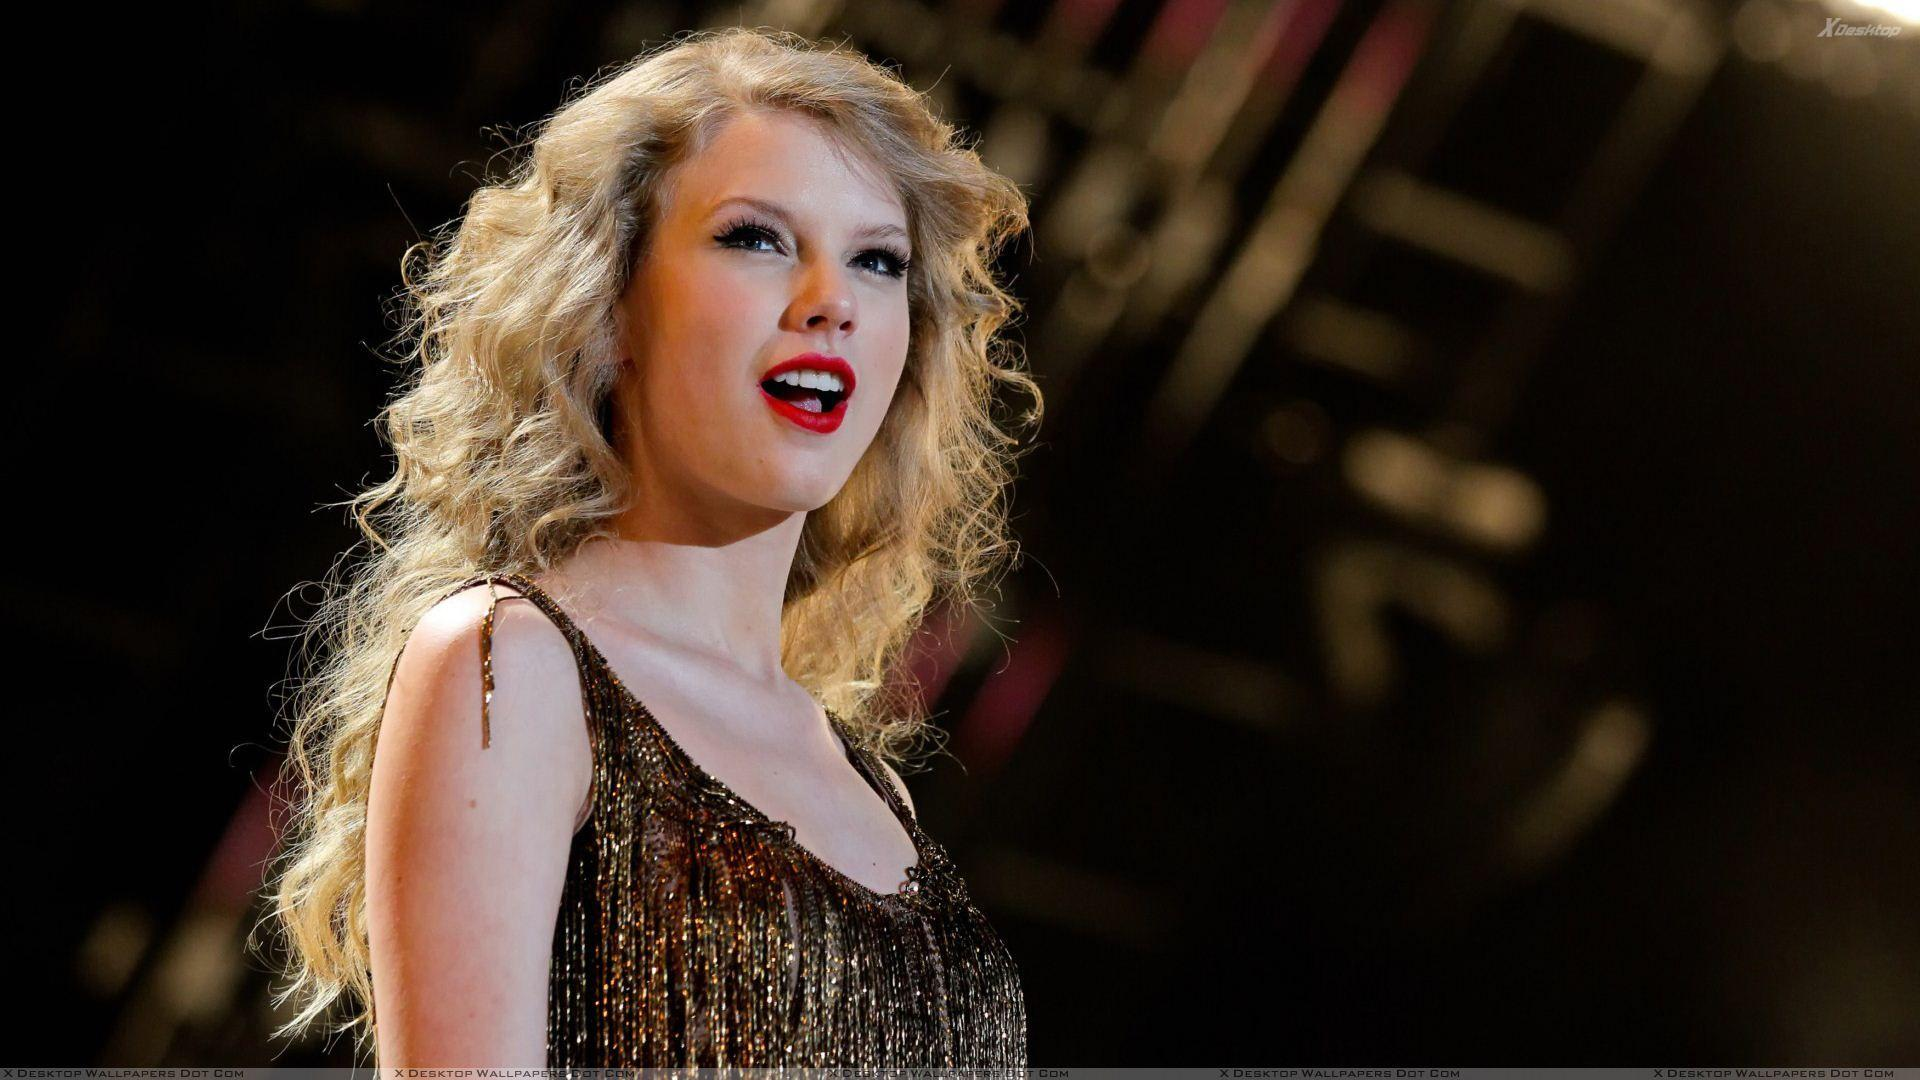 Taylor Swift Singer Wallpapers - Wallpaper Cave